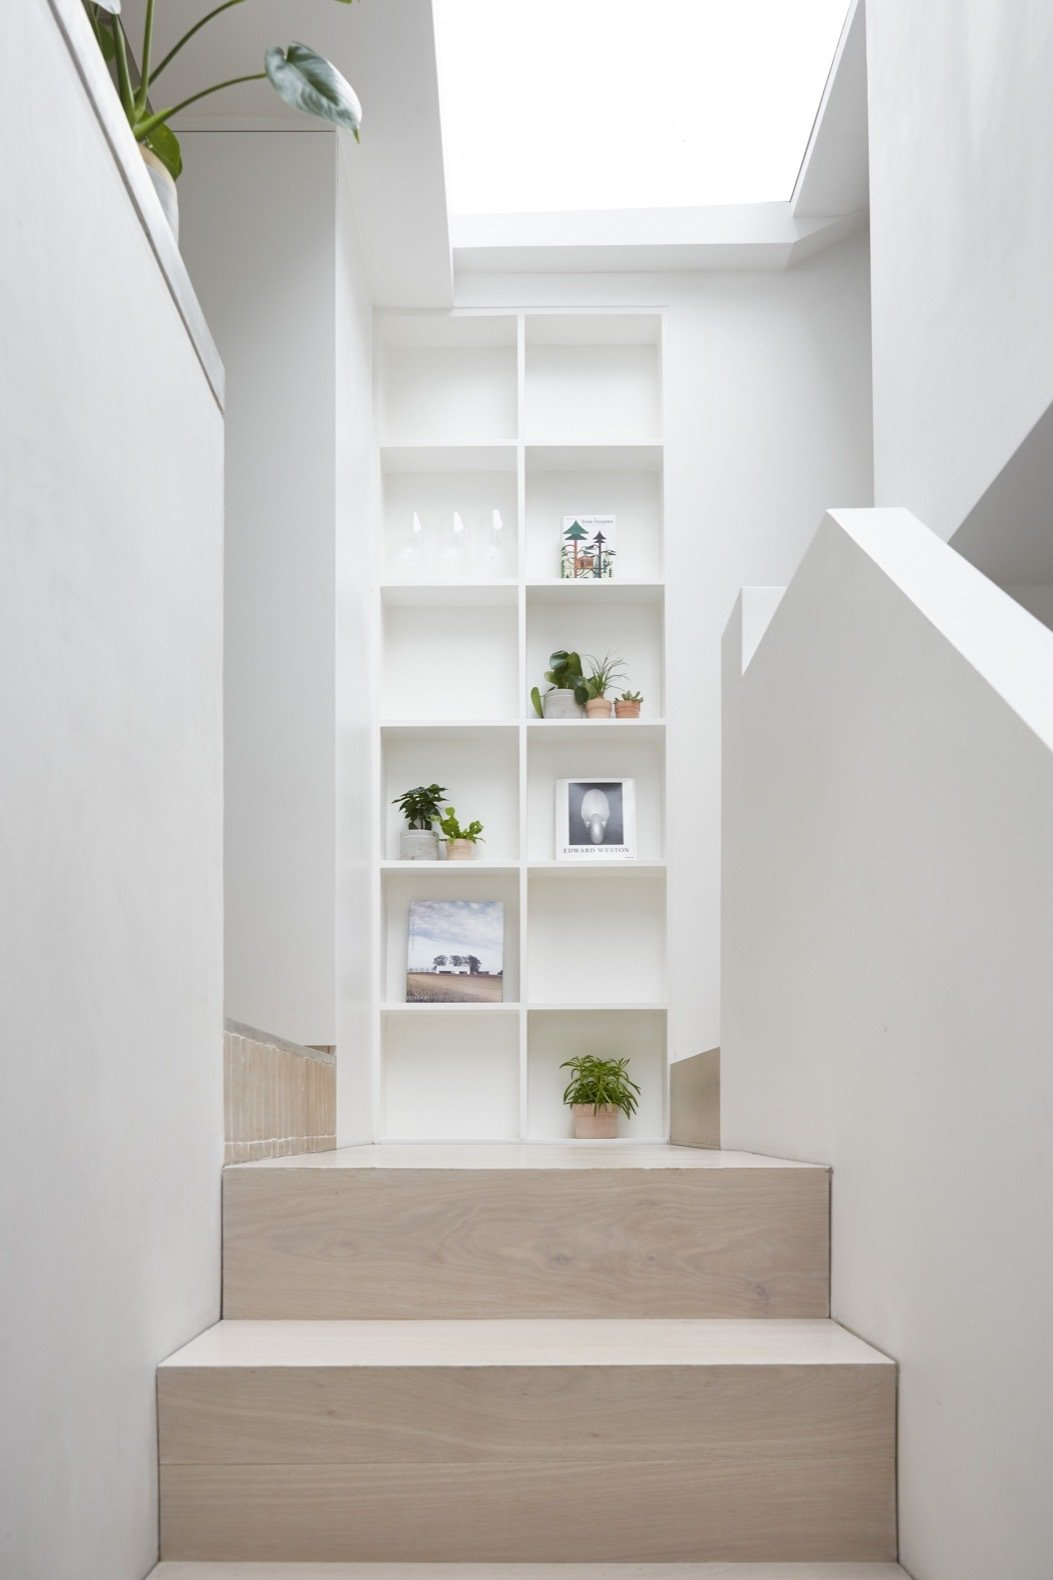 Staircase and Wood Tread The stairs, built of white-stained engineered oak, connect the lower-level living area with the kitchen and bedrooms.    Photo 4 of 13 in A Claustrophobic London Mews House Gets a Smart Redesign